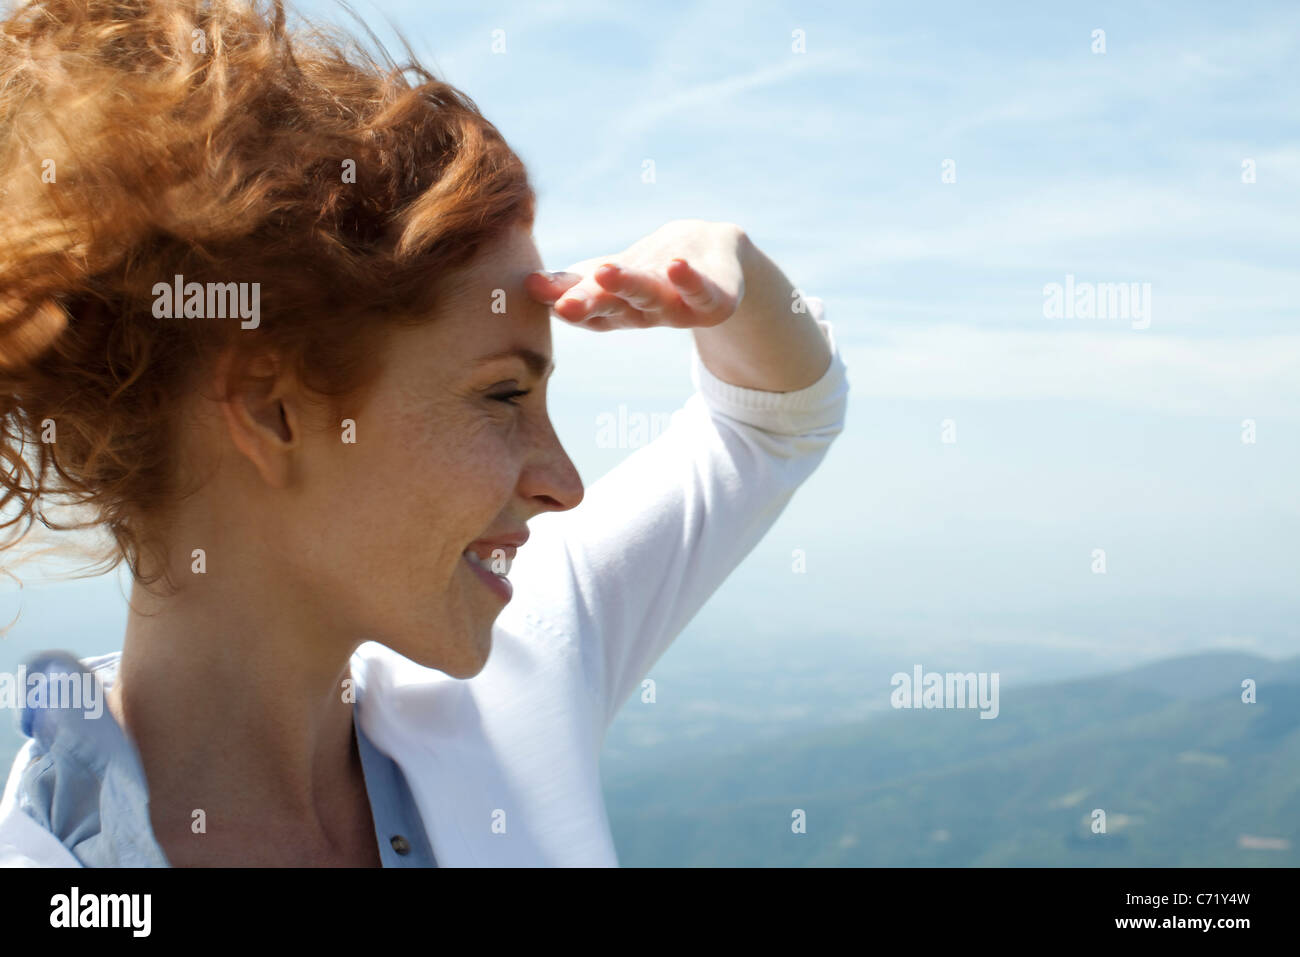 Woman looking at view, shading eyes with hand - Stock Image